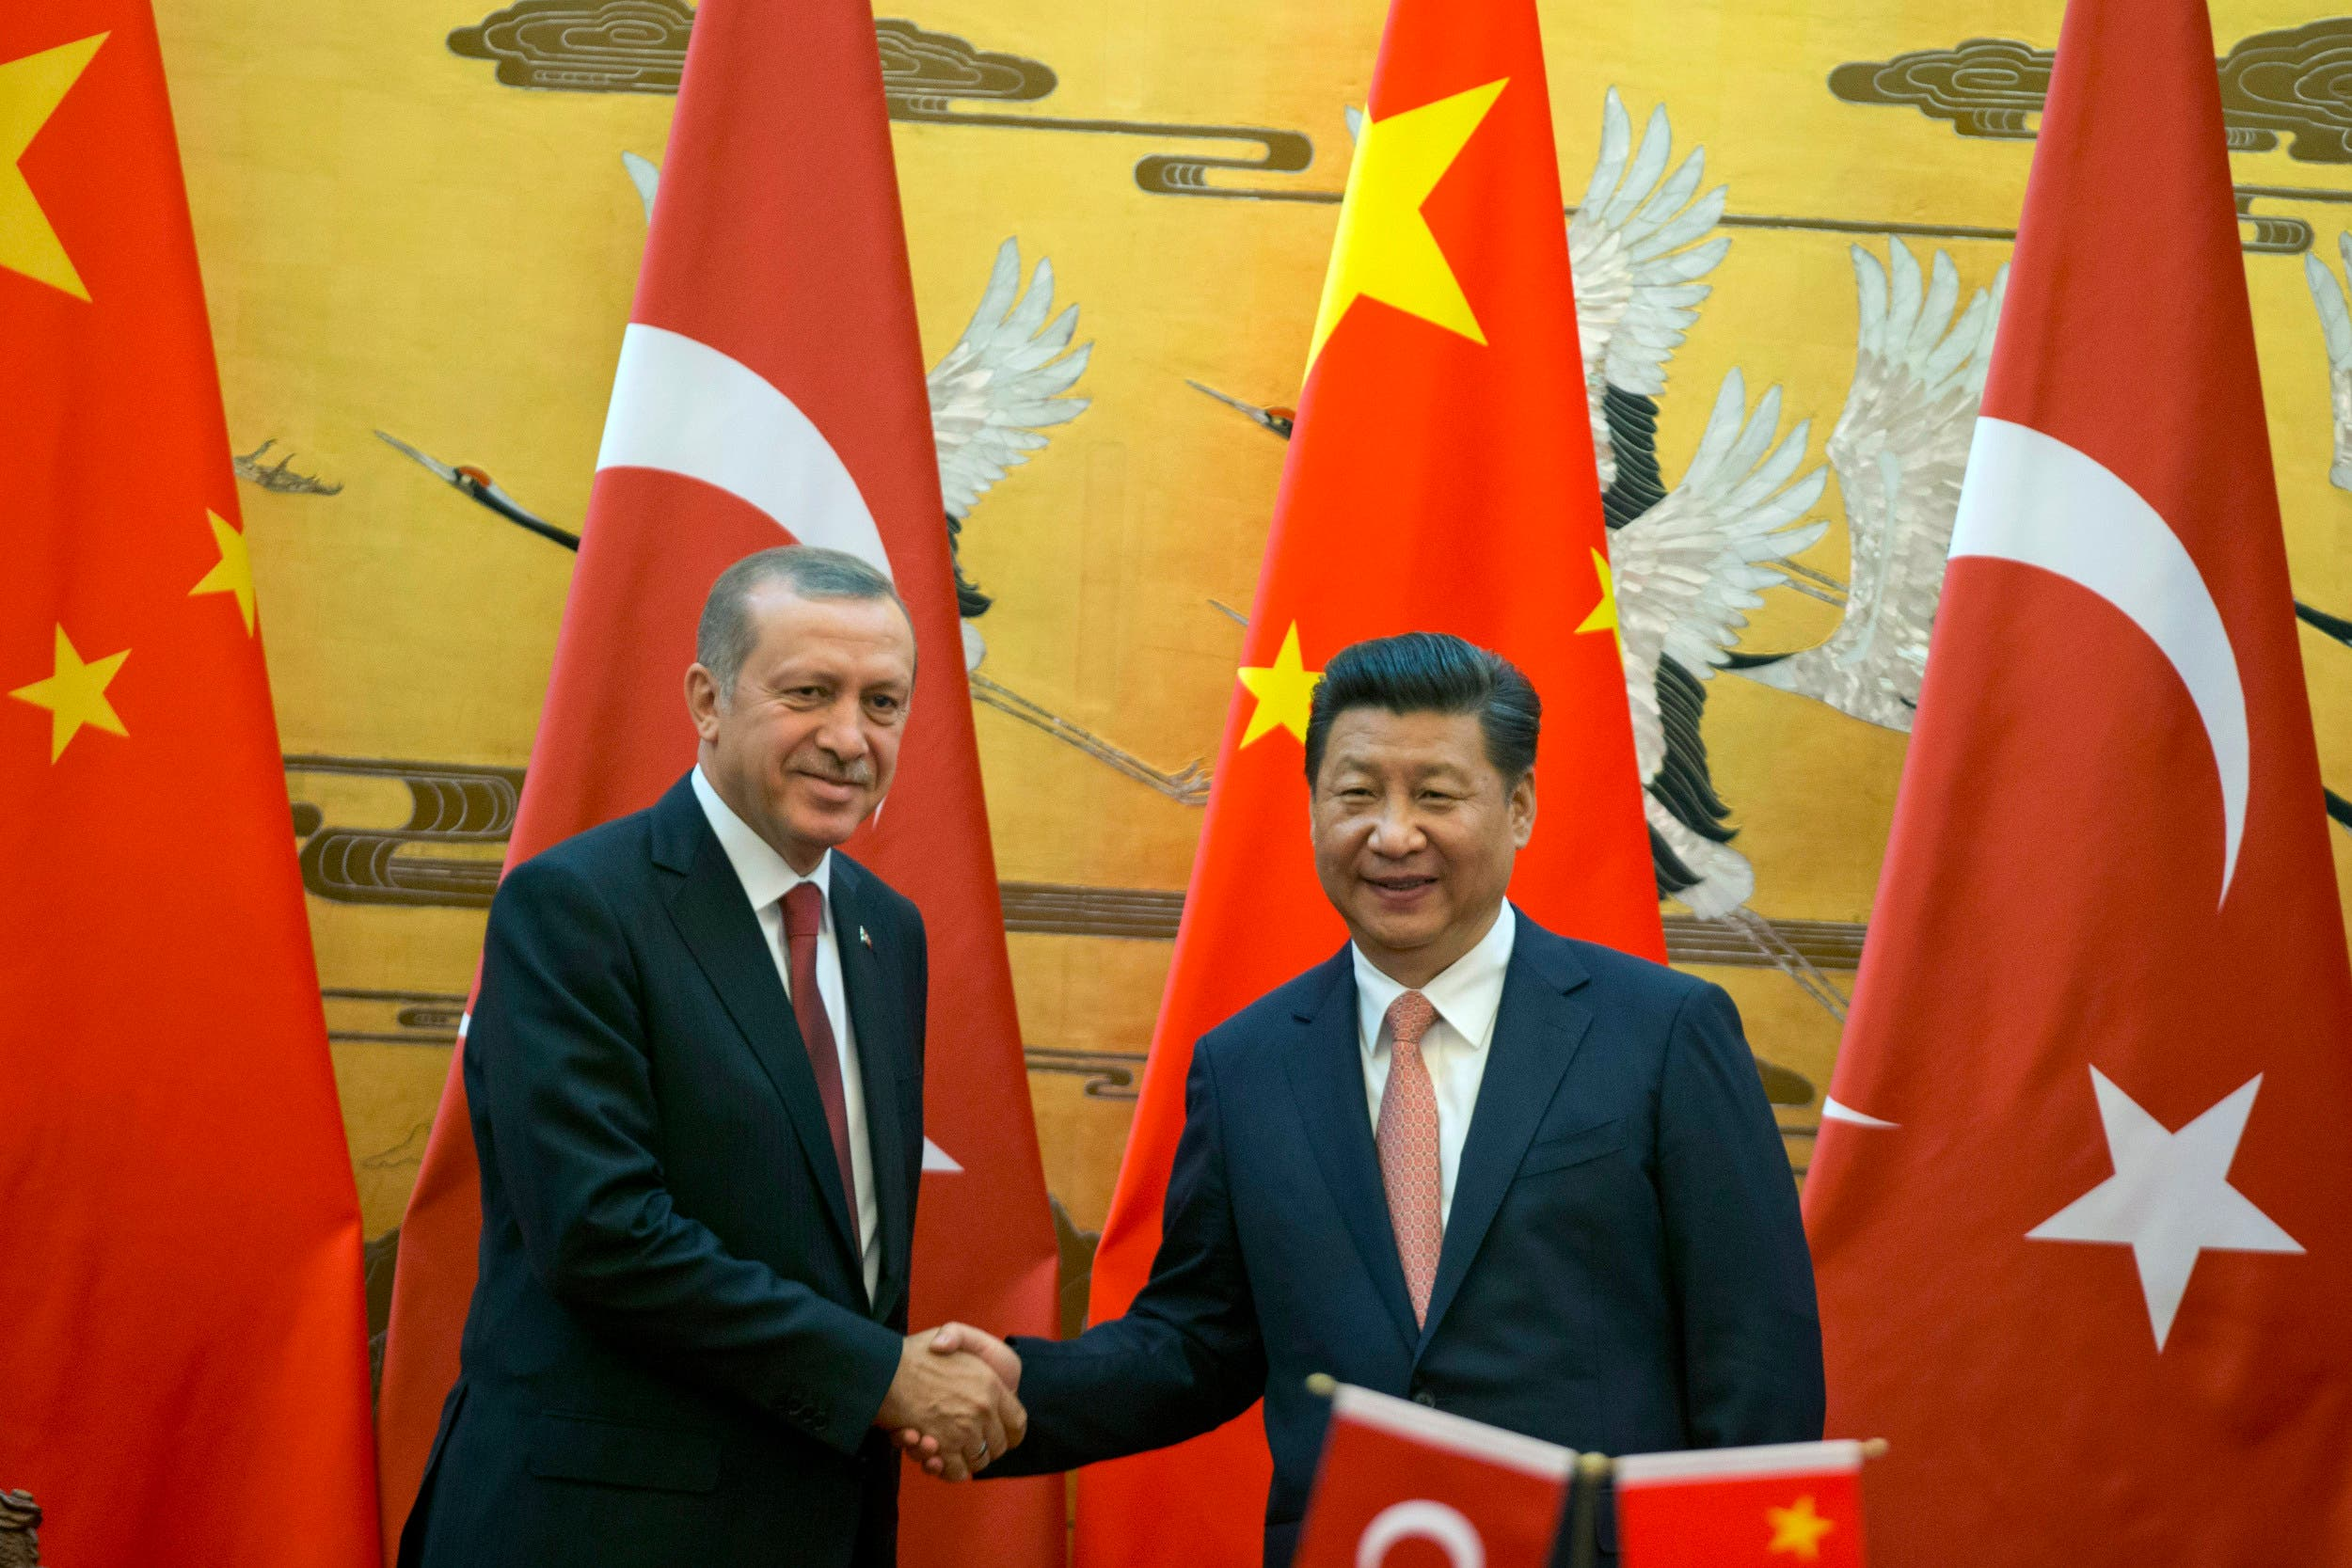 Chinese President Xi Jinping, right shakes hands with Turkey's President Recep Tayyip Erdogan, as they attend a signing ceremony in Beijing, on July 29, 2015. (File photo: AP)